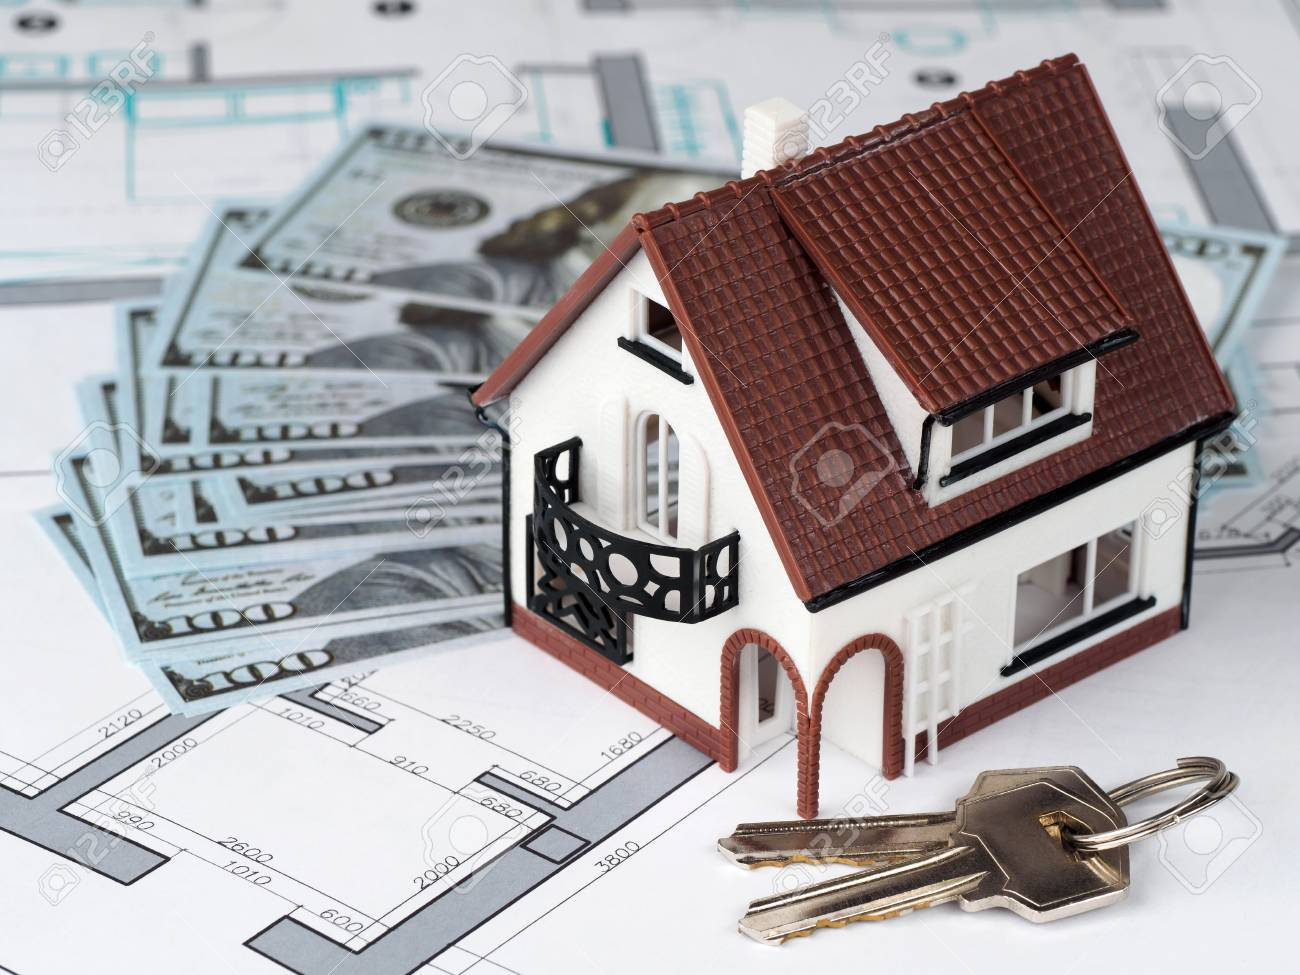 Toy House And Keys On Building Plan With Money On Background Stock Photo Picture And Royalty Free Image Image 84158481